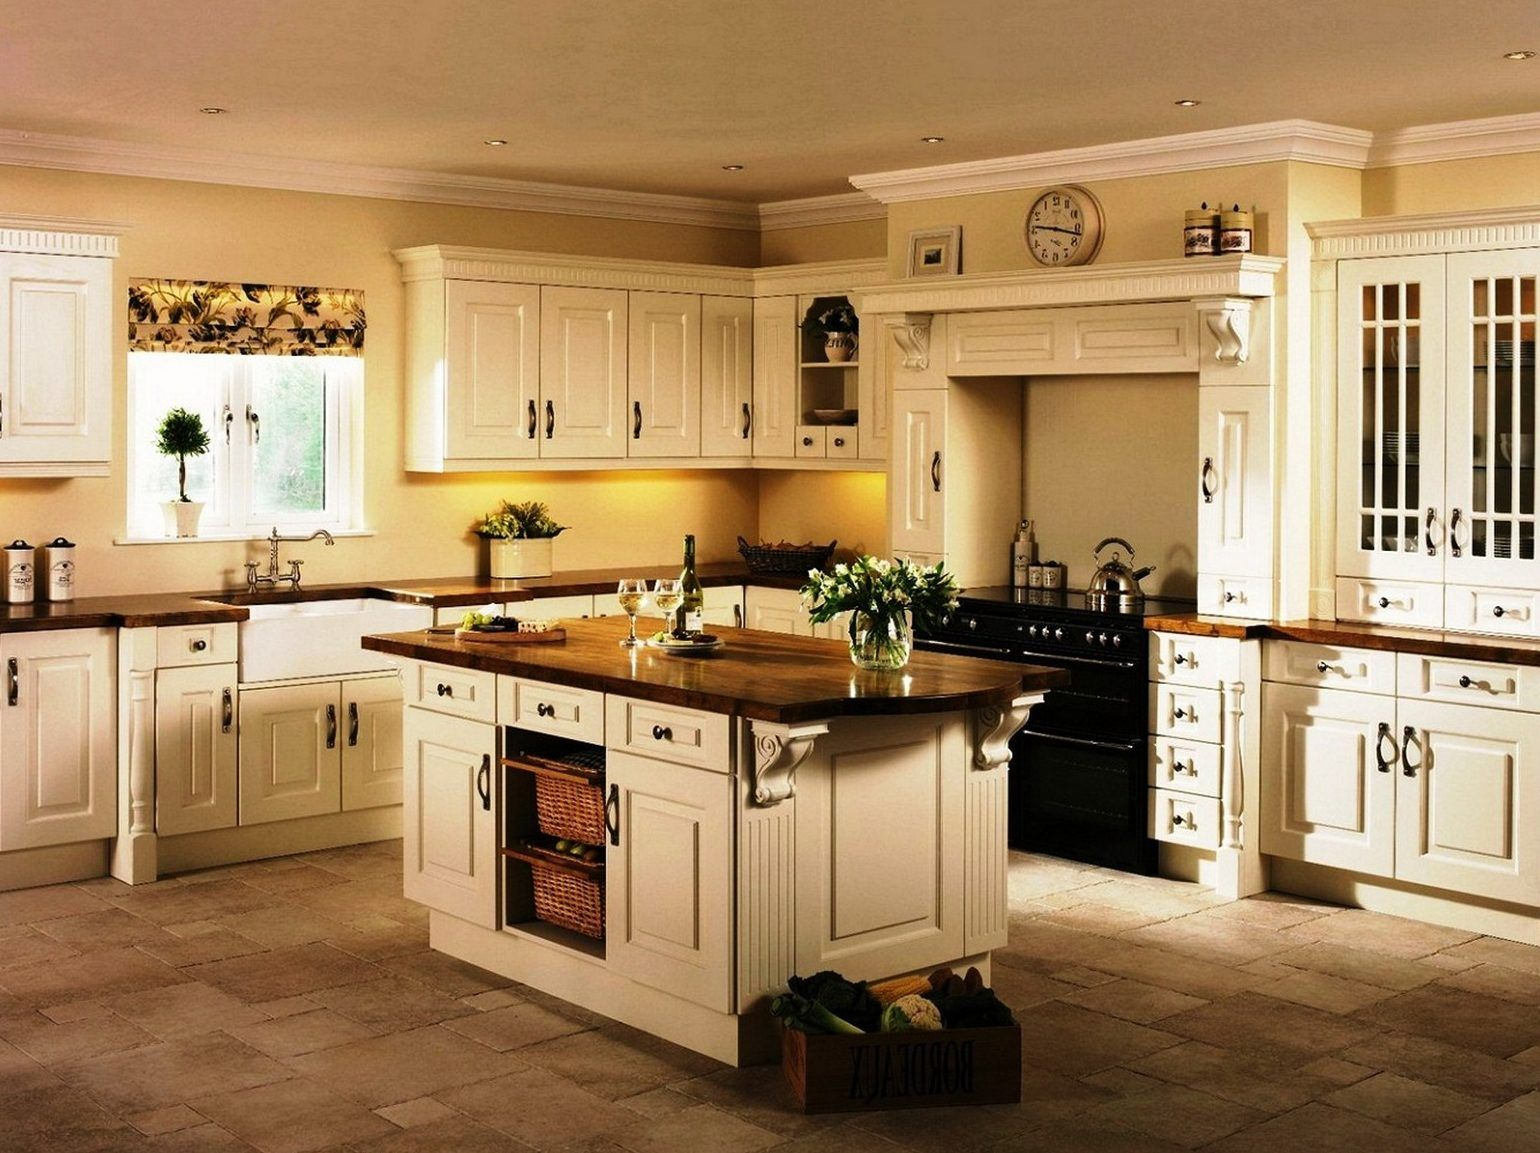 Cream Kitchen Cabinets Trends Furniture With A Soft Color Cream Kitchen Cabinets Yellow Kitchen Walls Cream Colored Kitchen Cabinets